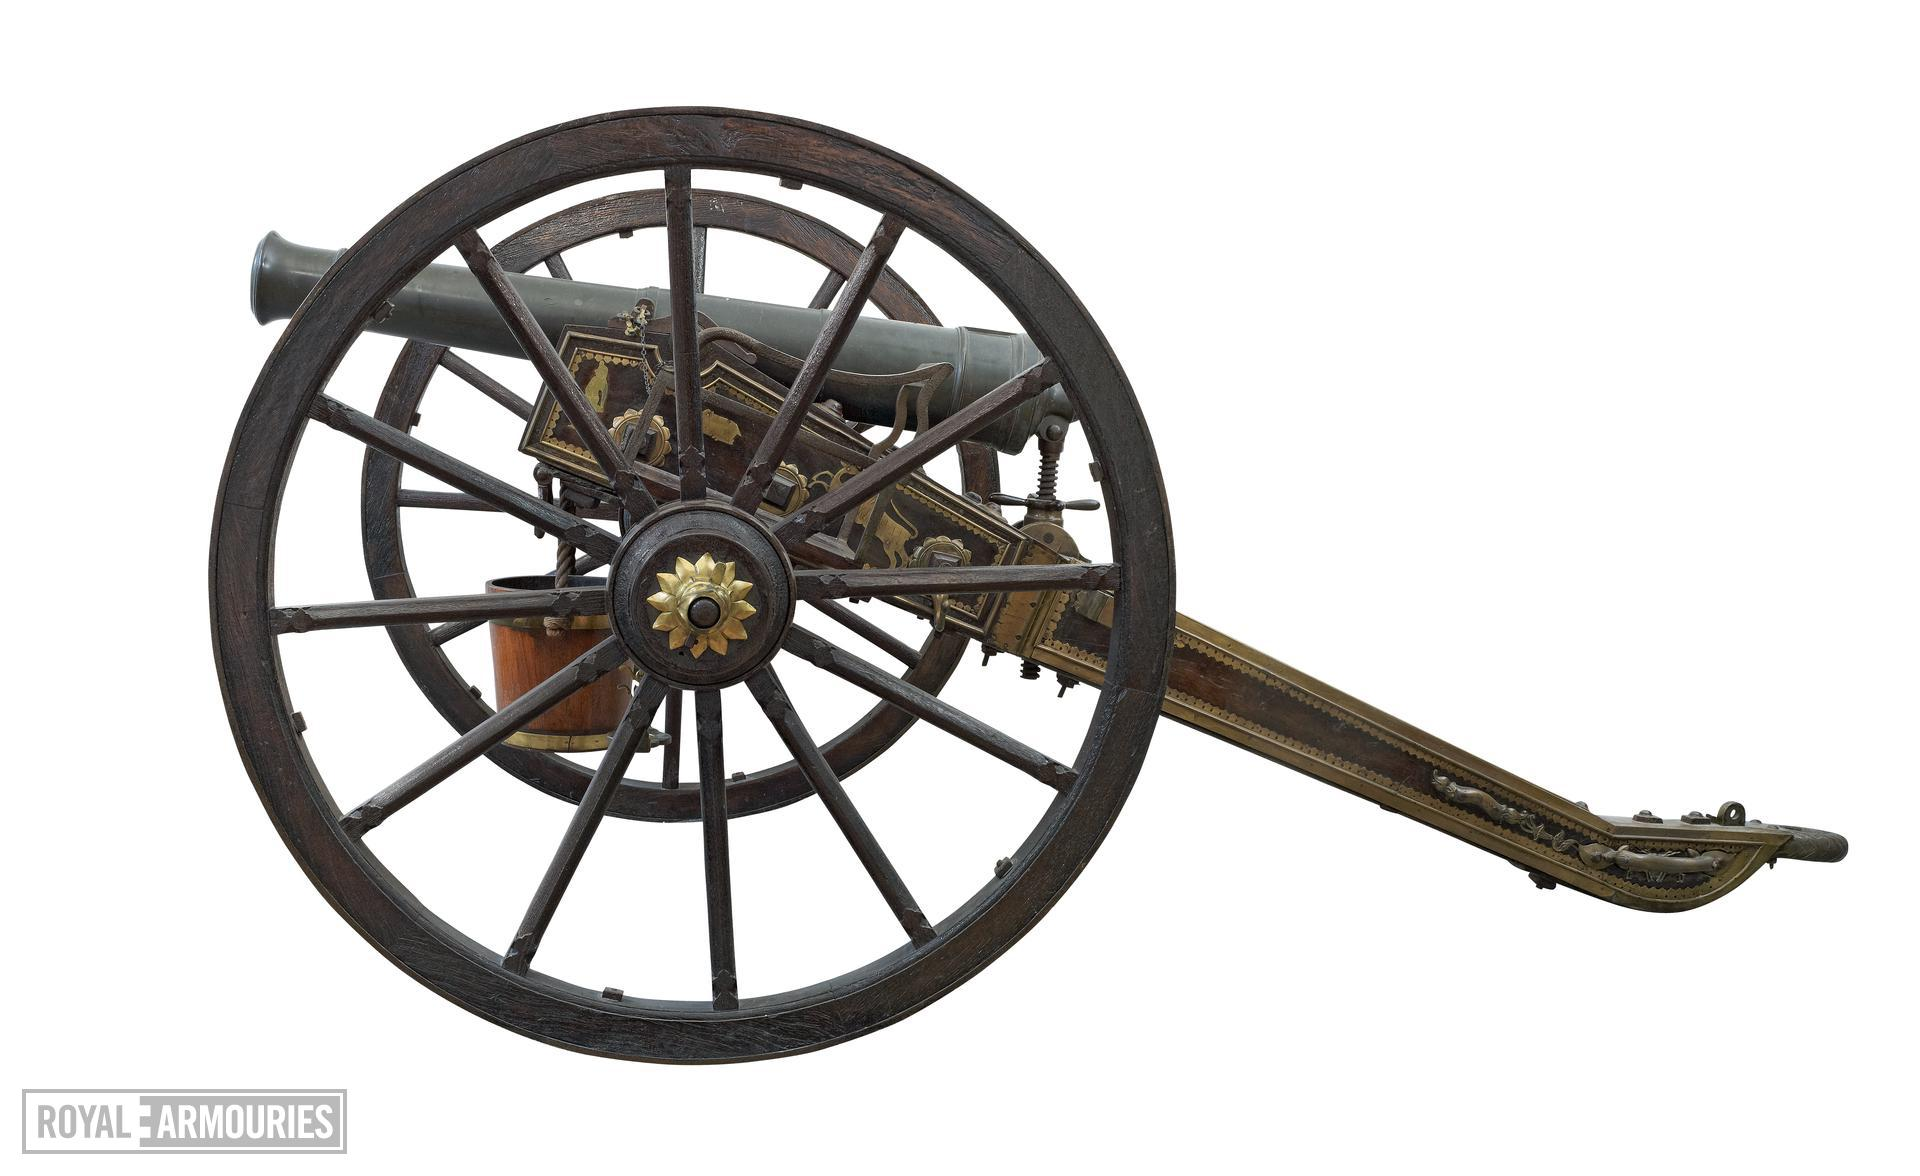 Gun - 6-pounder, Indian Field Gun, Limber and Carriage Plain barrel but very ornate carriage. Known as the Sutlej Gun